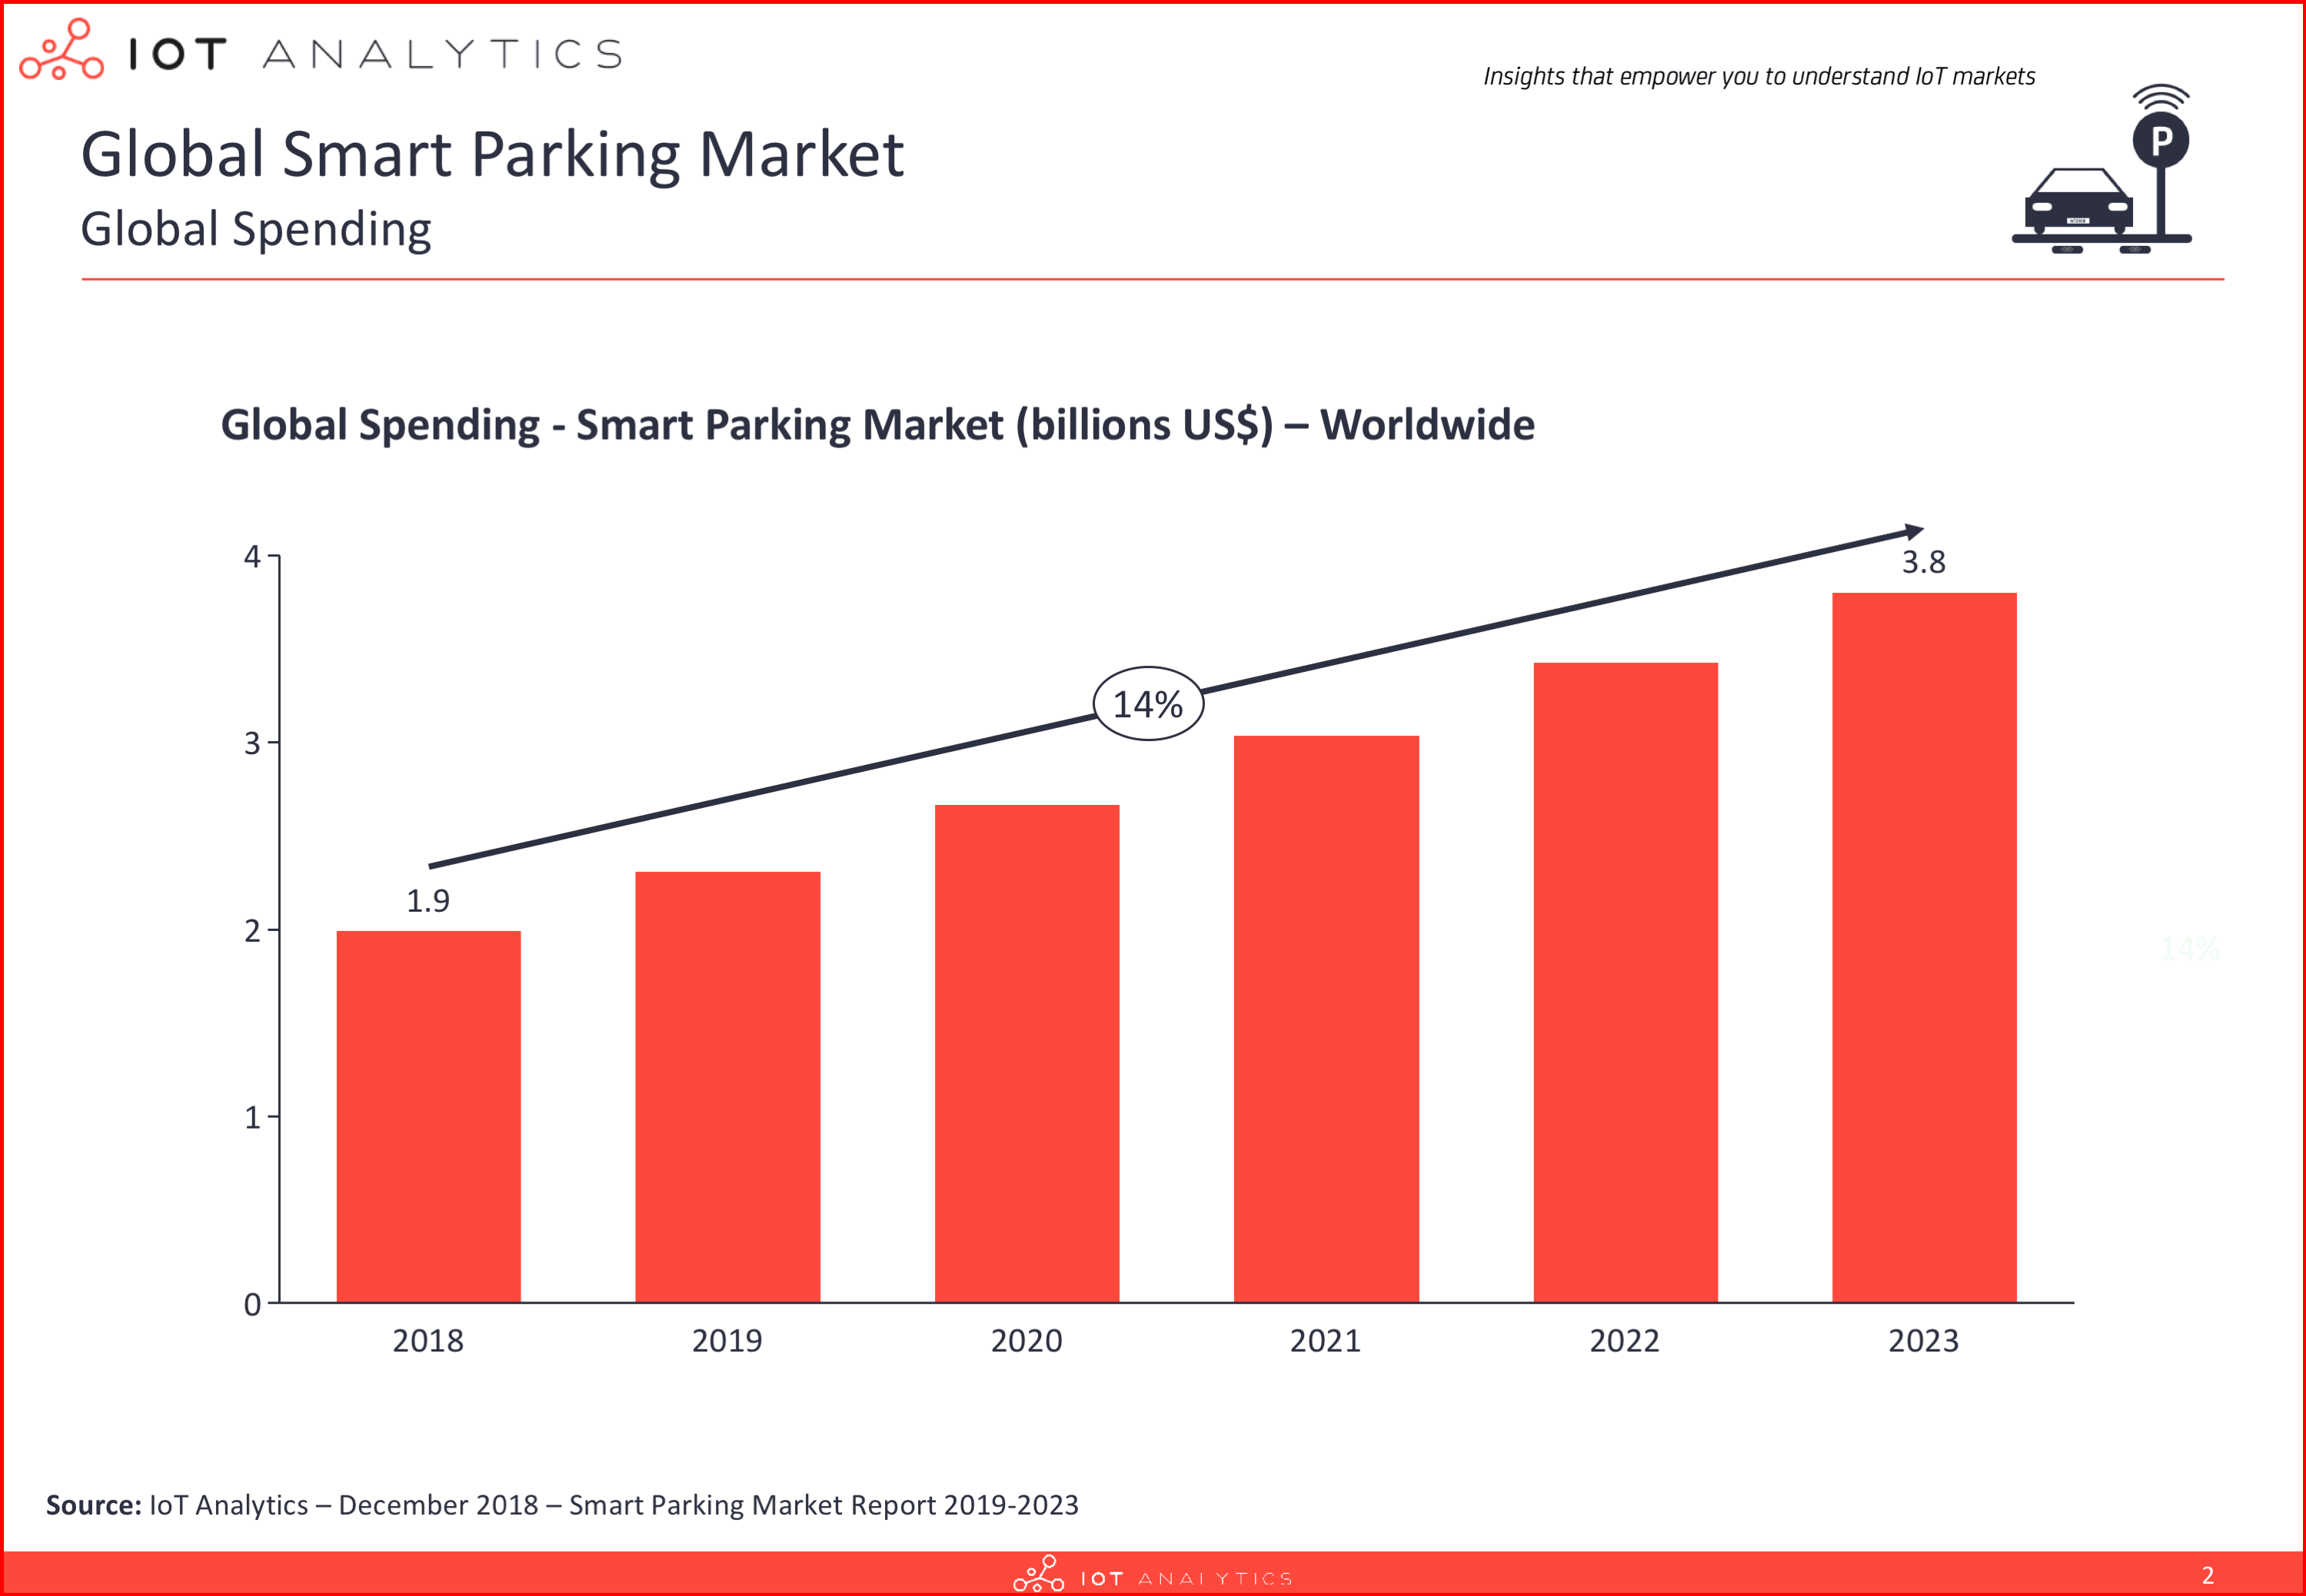 Global Smart Parking market